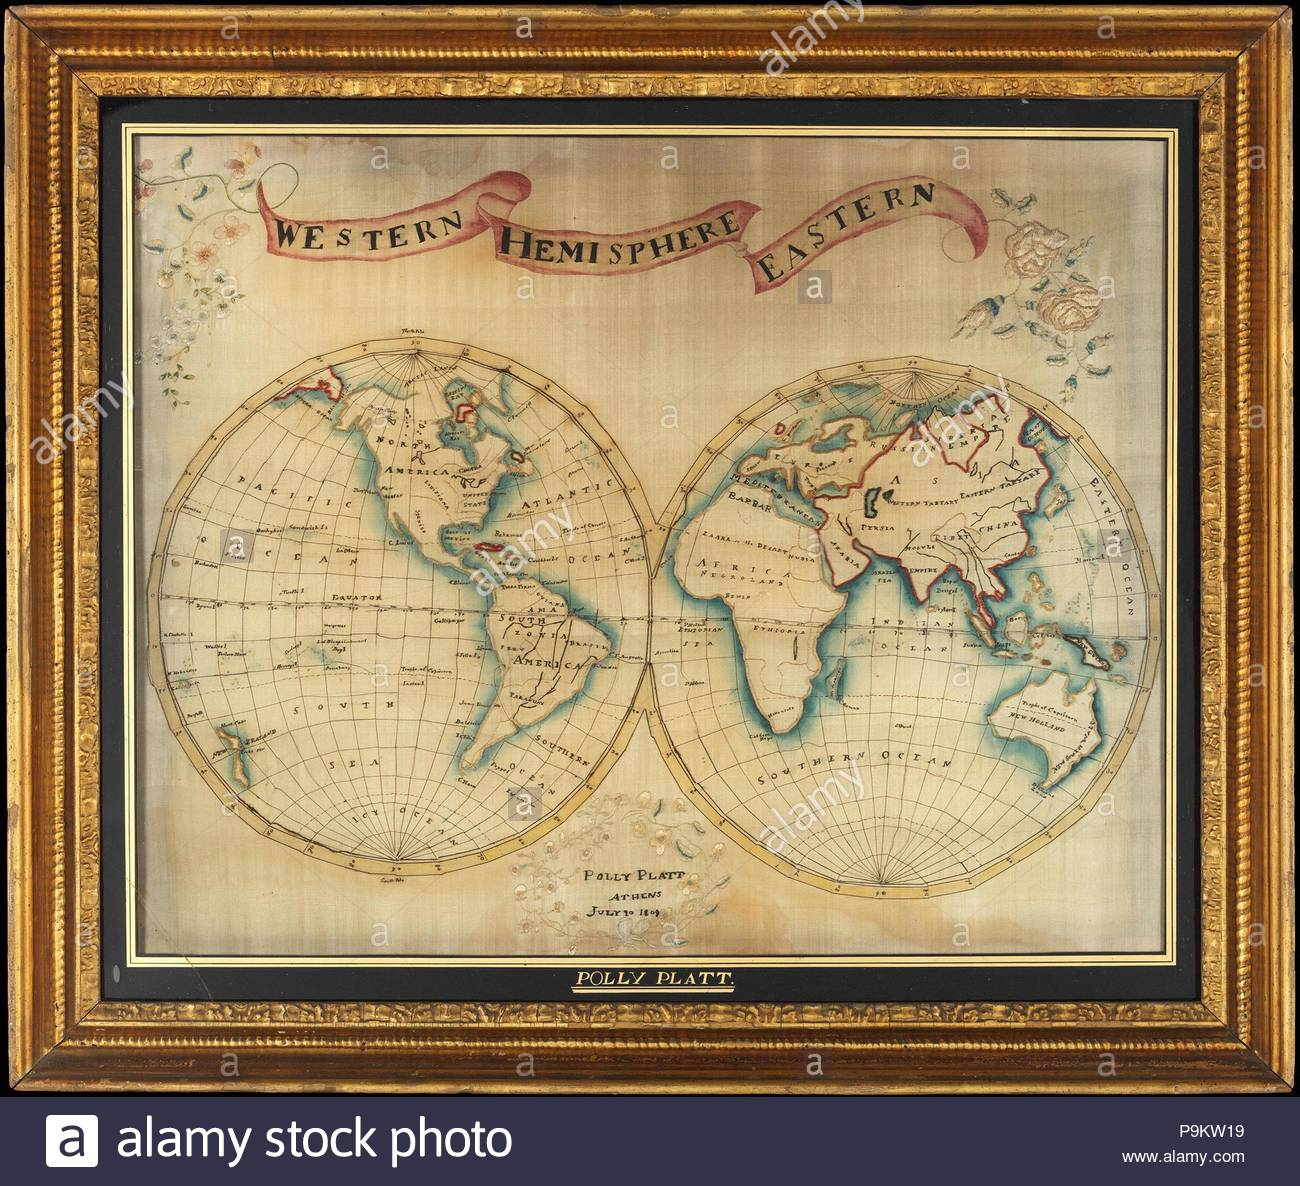 559d9cb93bb Map Embroidery Stock Photos   Map Embroidery Stock Images - Alamy